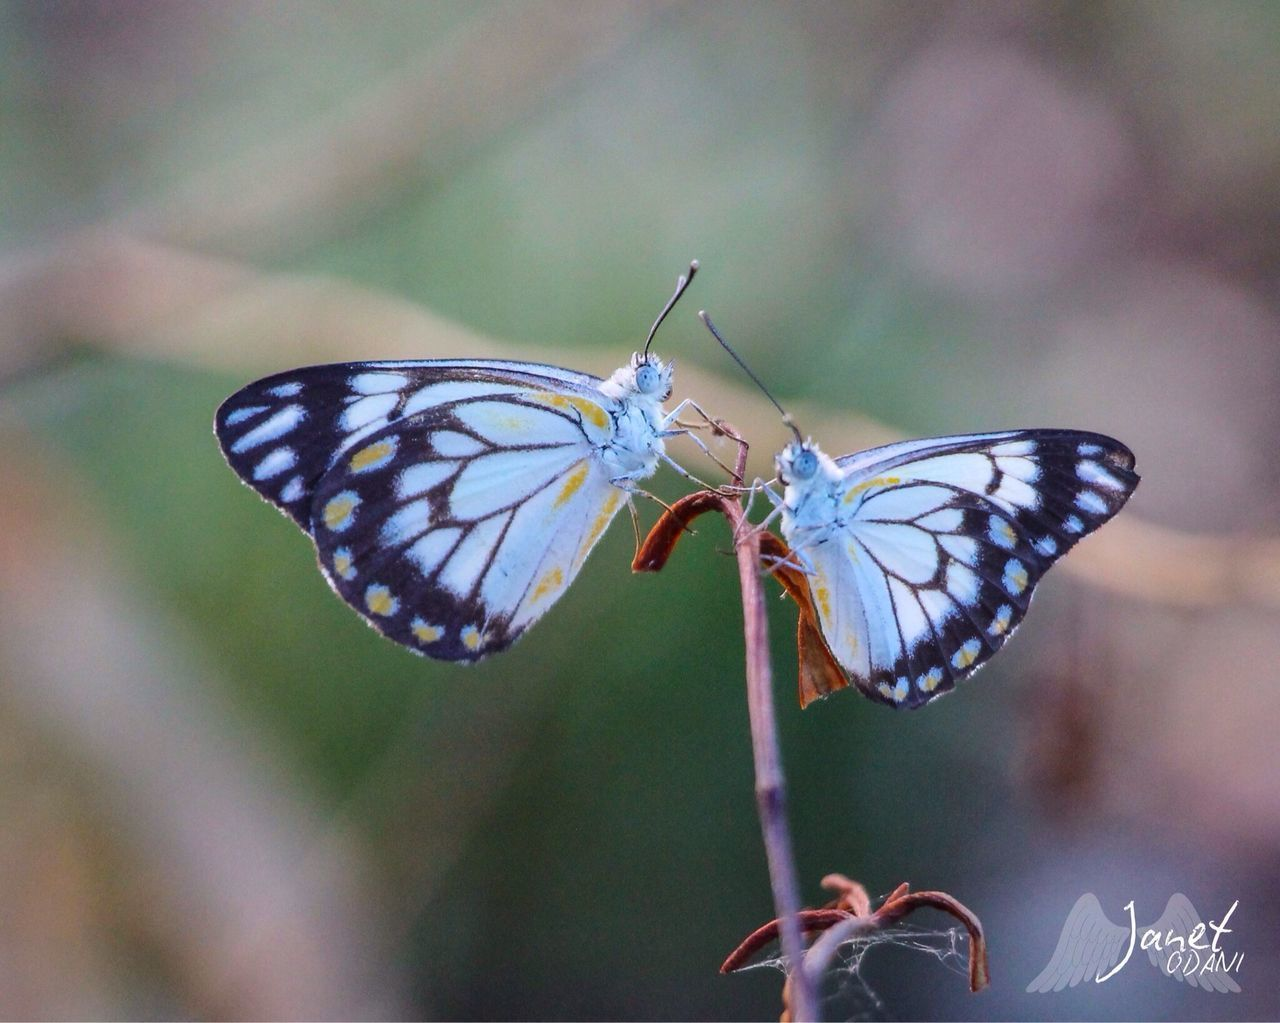 insect, animals in the wild, animal themes, one animal, butterfly - insect, animal wing, butterfly, animal wildlife, focus on foreground, no people, nature, close-up, spread wings, day, outdoors, plant, fragility, perching, flower, beauty in nature, full length, pollination, freshness, flower head